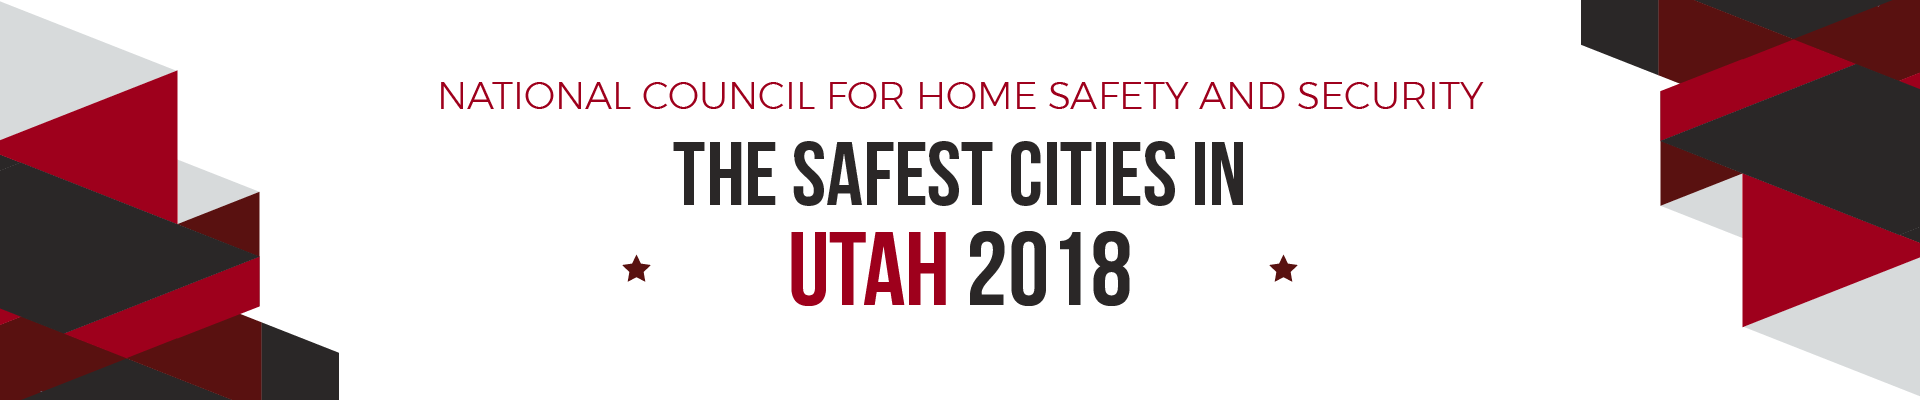 utah safe cities 2018